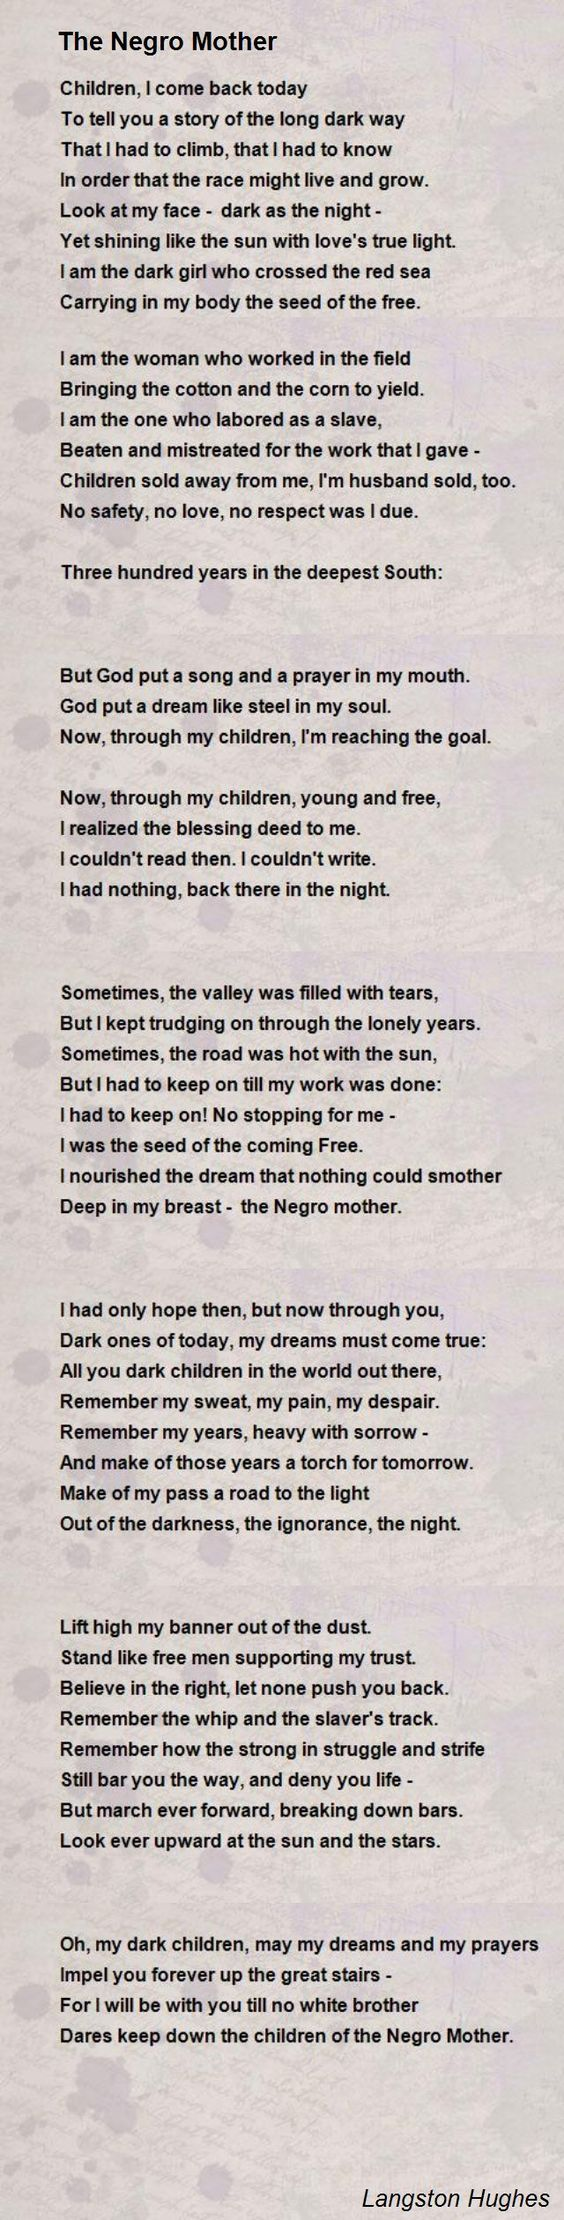 The Negro Mother by Langston Hughes.